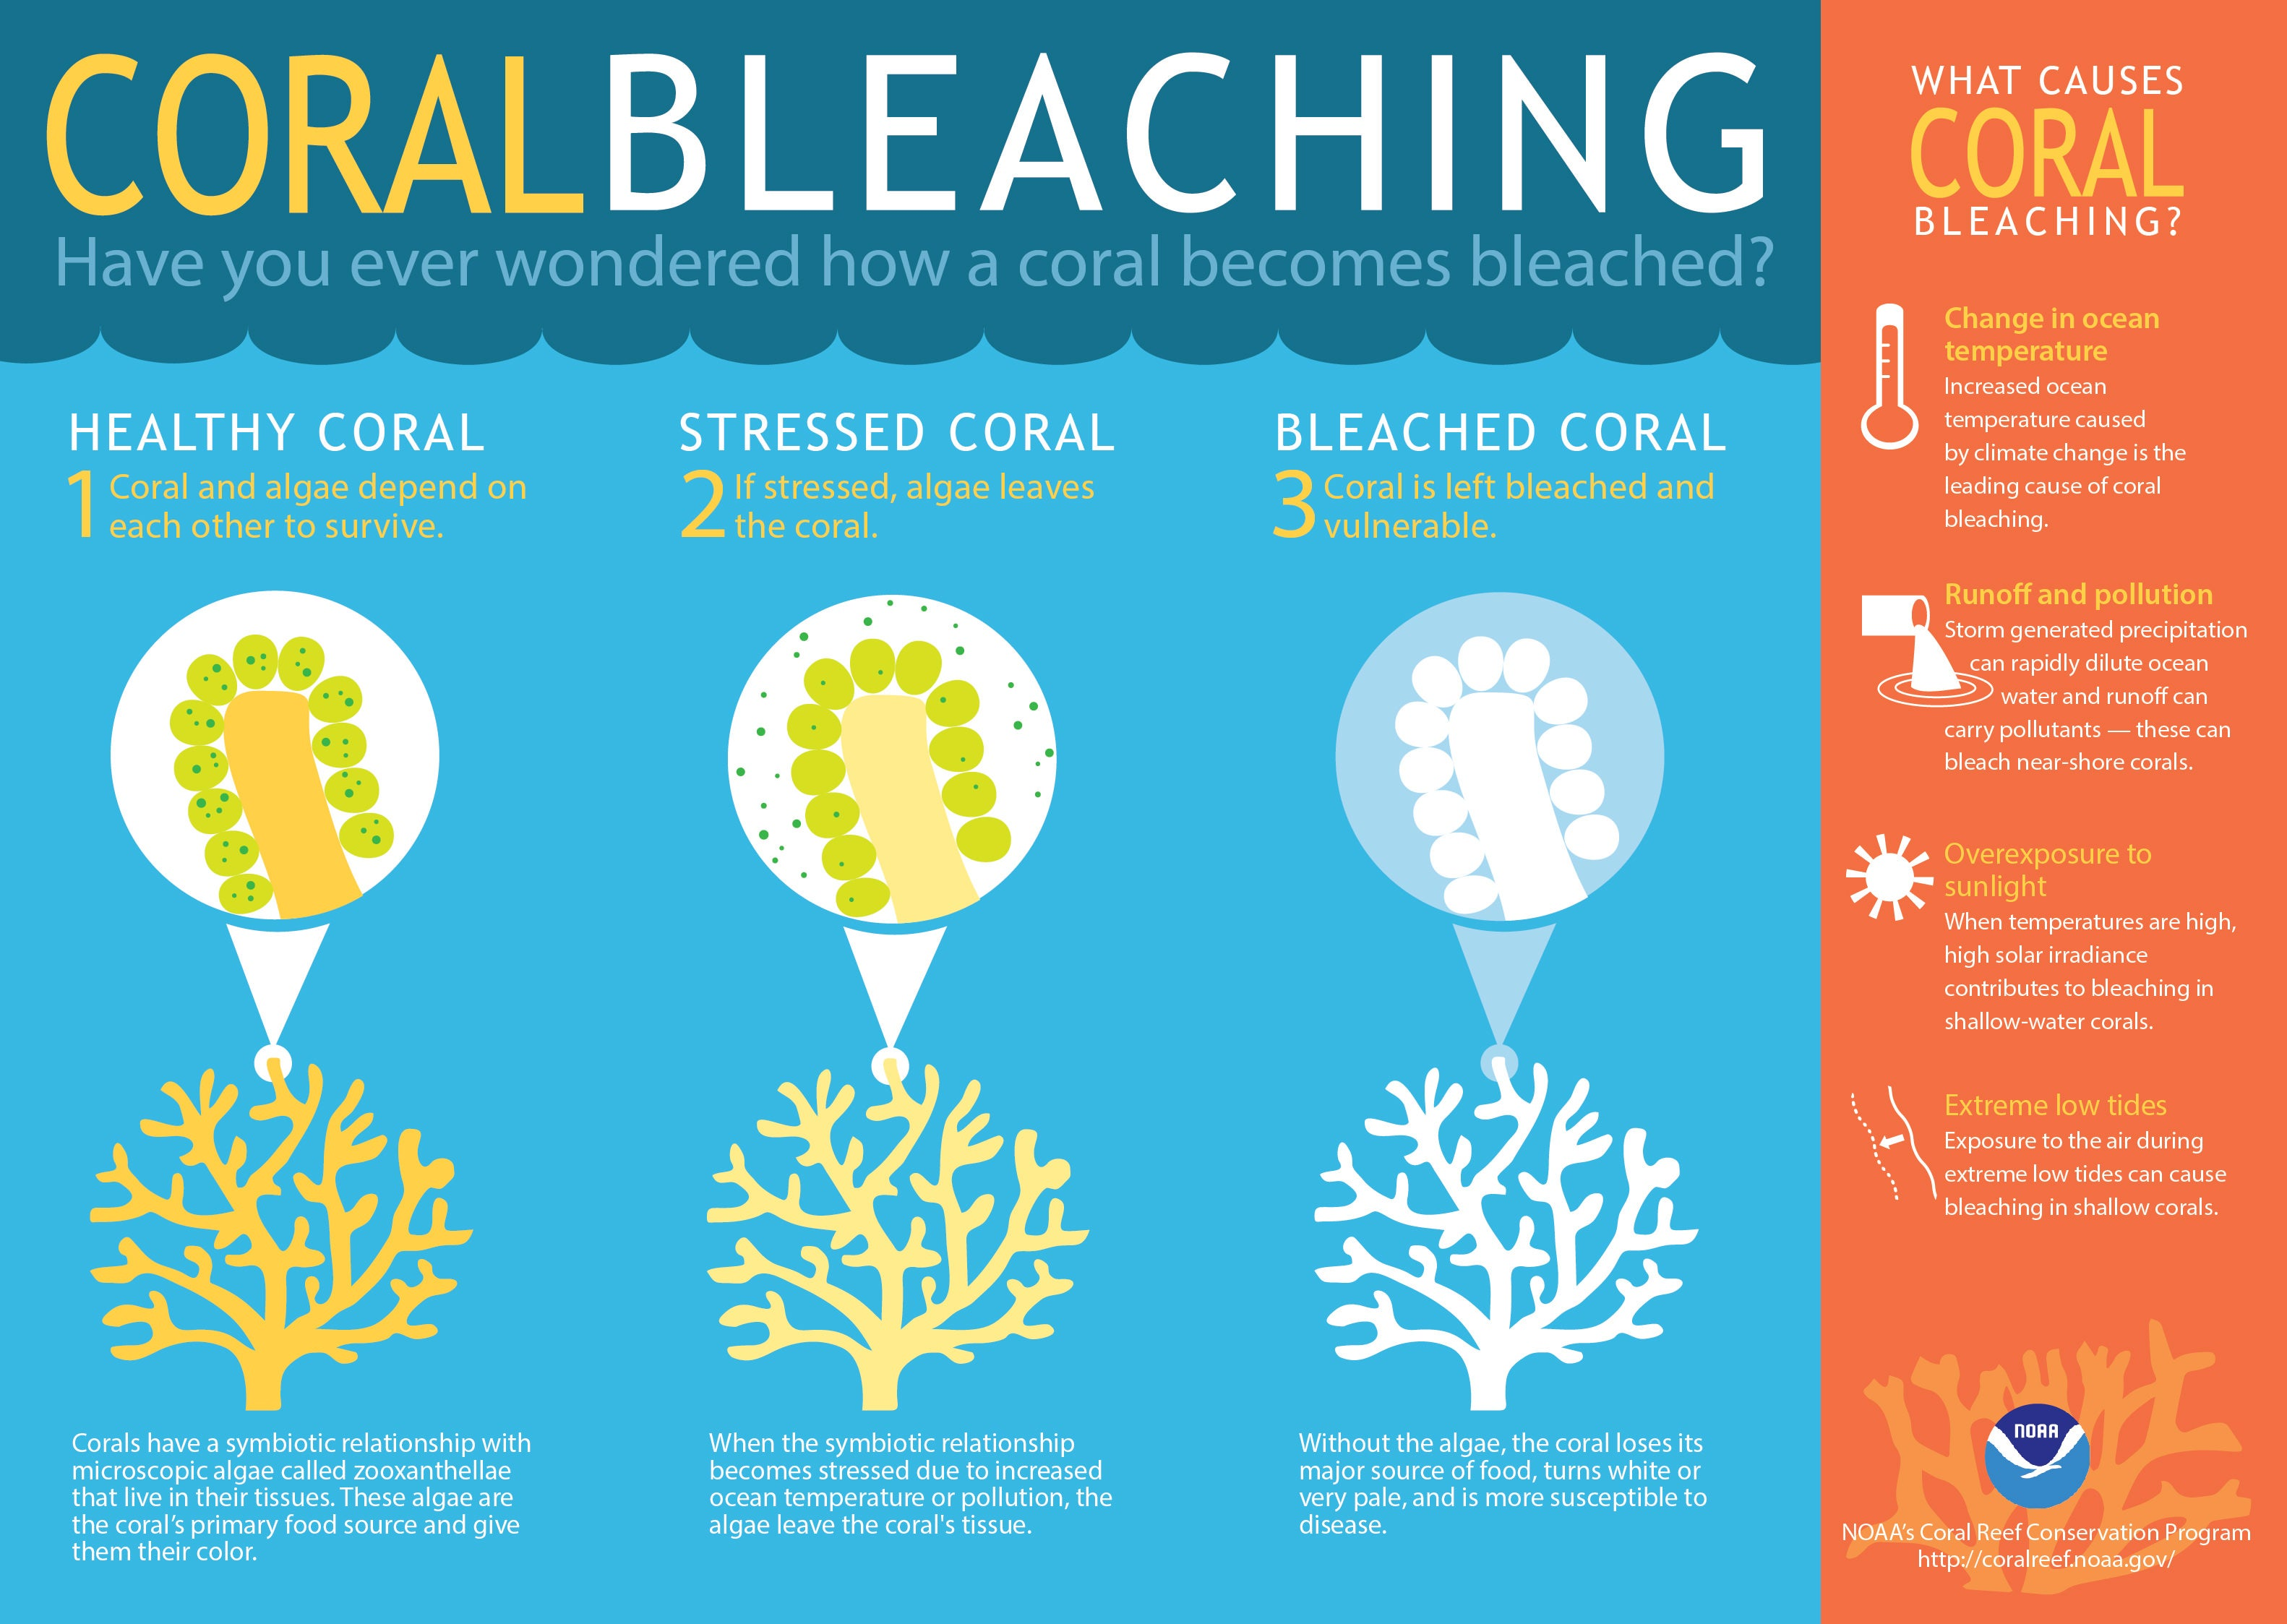 A Massive Bleaching Event is Threatening the World's Coral Reefs